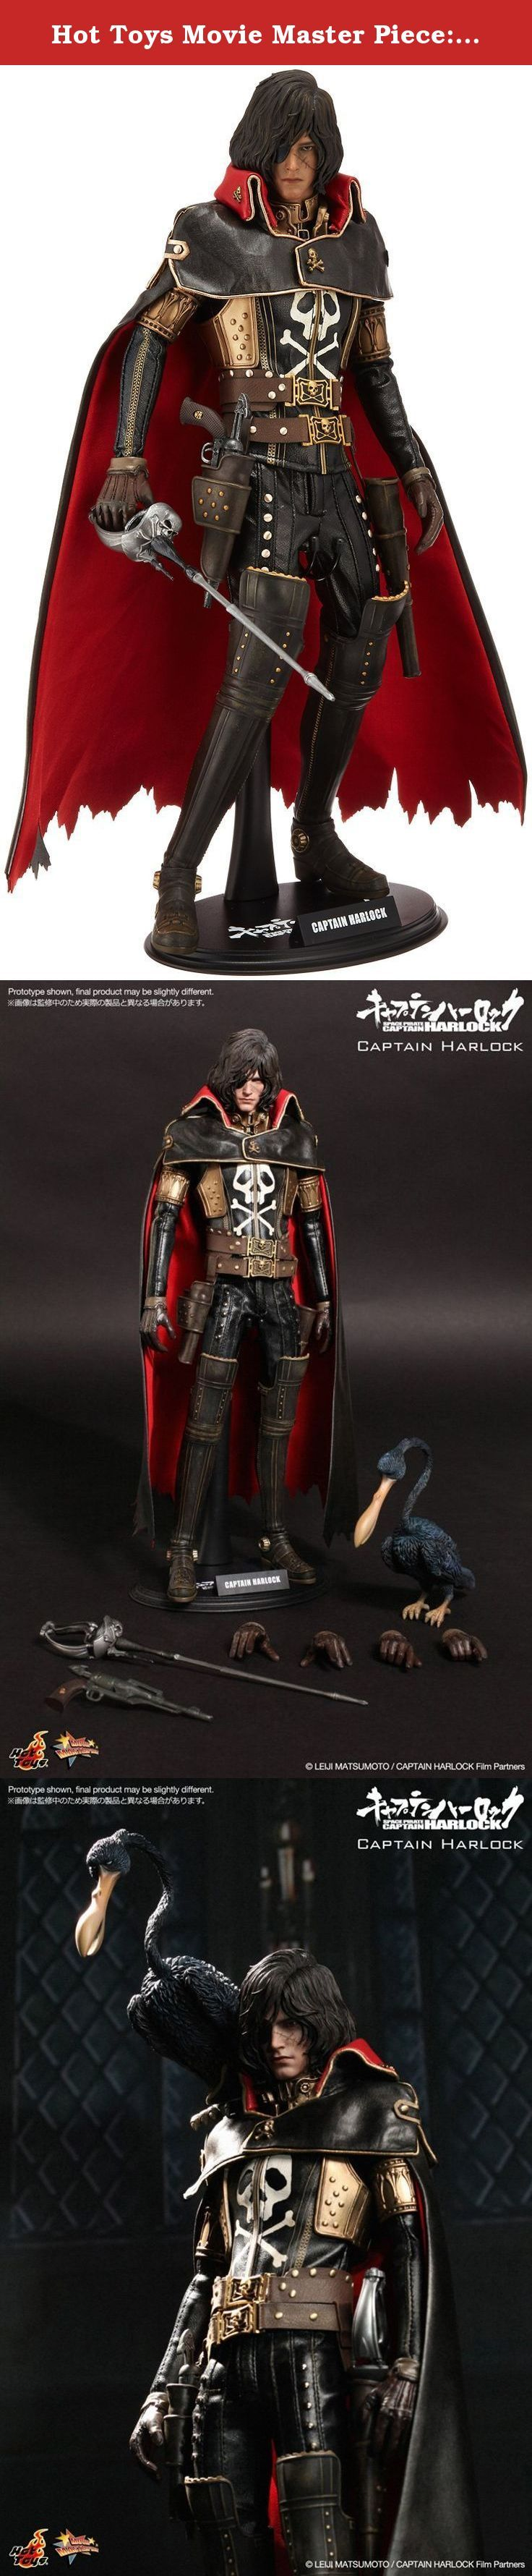 Hot Toys Movie Master Piece: Space Pirate Captain Harlock - Captain Harlock. Body size: height of about 32 centimeters Target Gender: Boys From 15-year-old: Age The main manufacturing countries: China (C) LEIJI MATSUMOTO / CAPTAIN HARLOCK Film Partners.